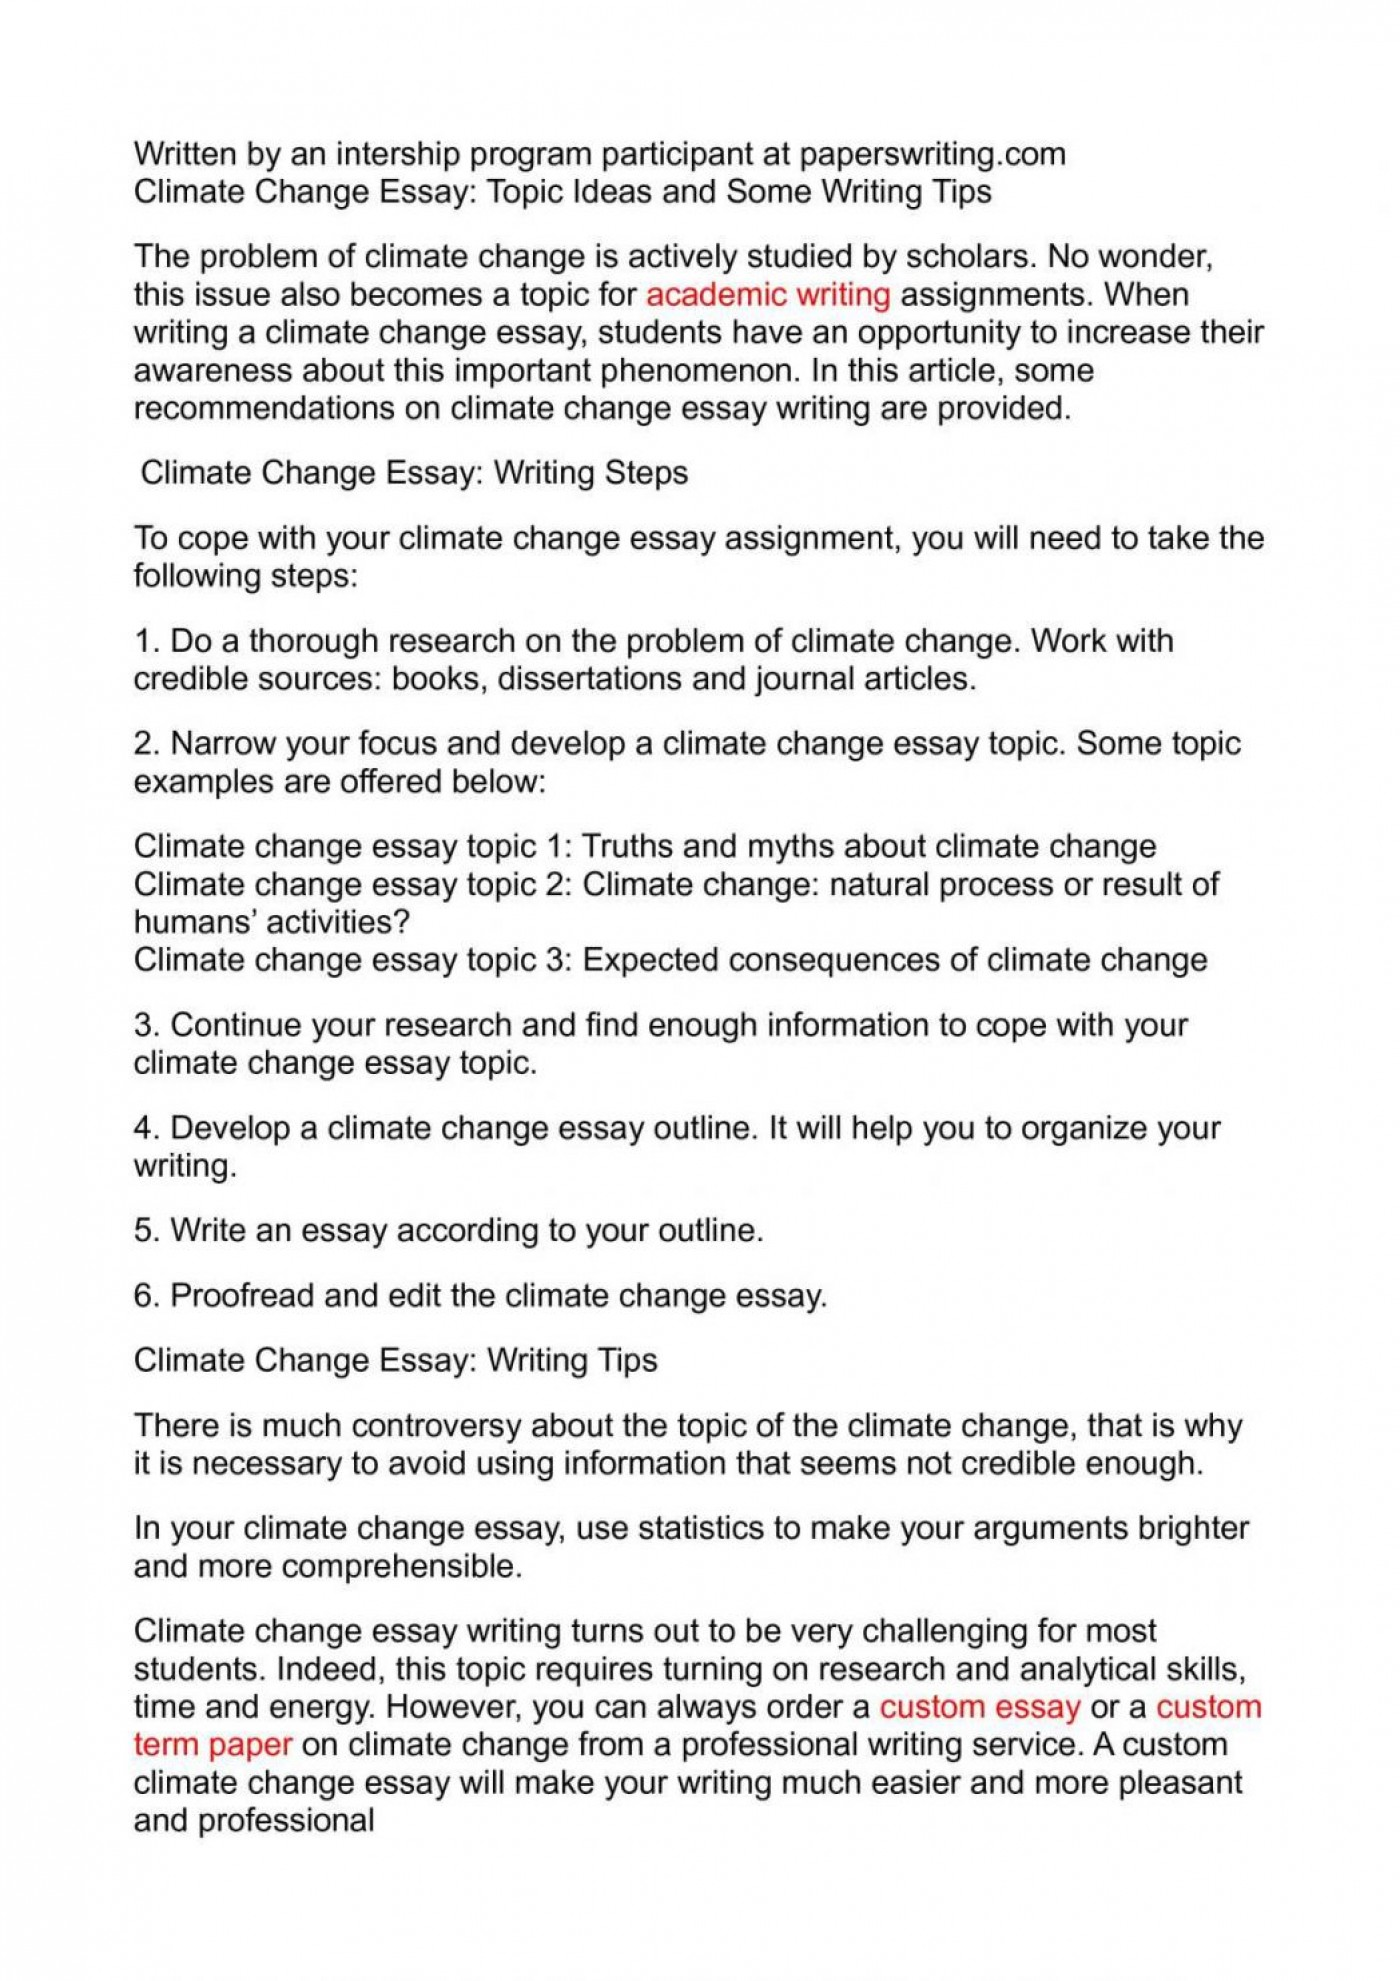 004 Global Climate Change Essay Warming And How To Write An Abo Argumentative On Persuasive Study Mode About Good Paper 1048x1483 Awesome High School In English 150 Words Kenya Art Competition 2018 1400